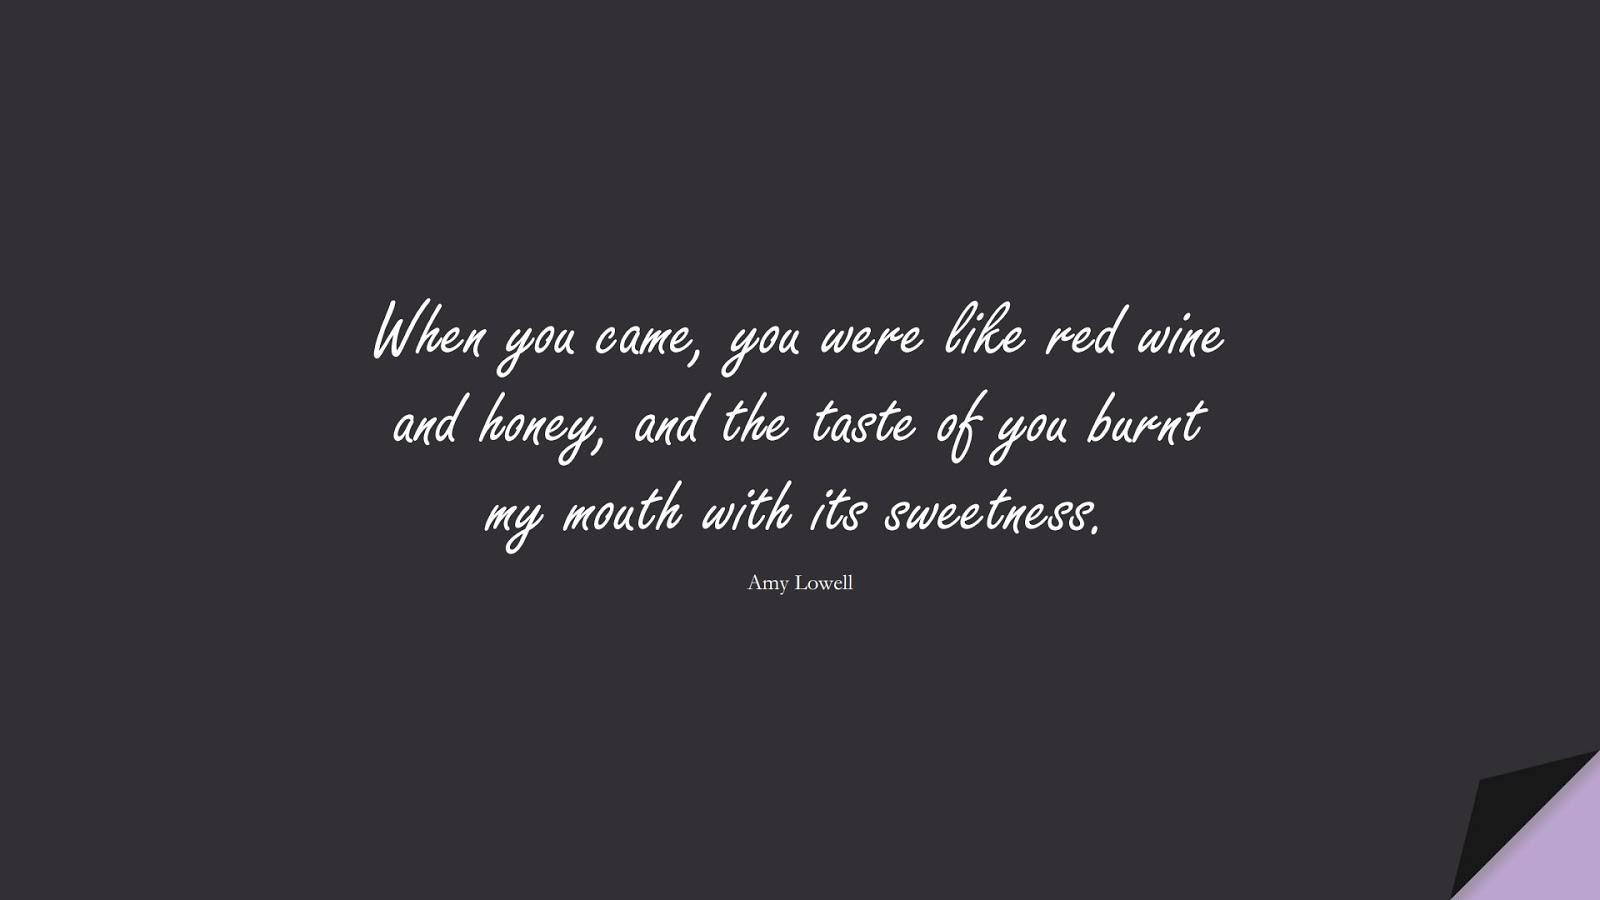 When you came, you were like red wine and honey, and the taste of you burnt my mouth with its sweetness. (Amy Lowell);  #LoveQuotes